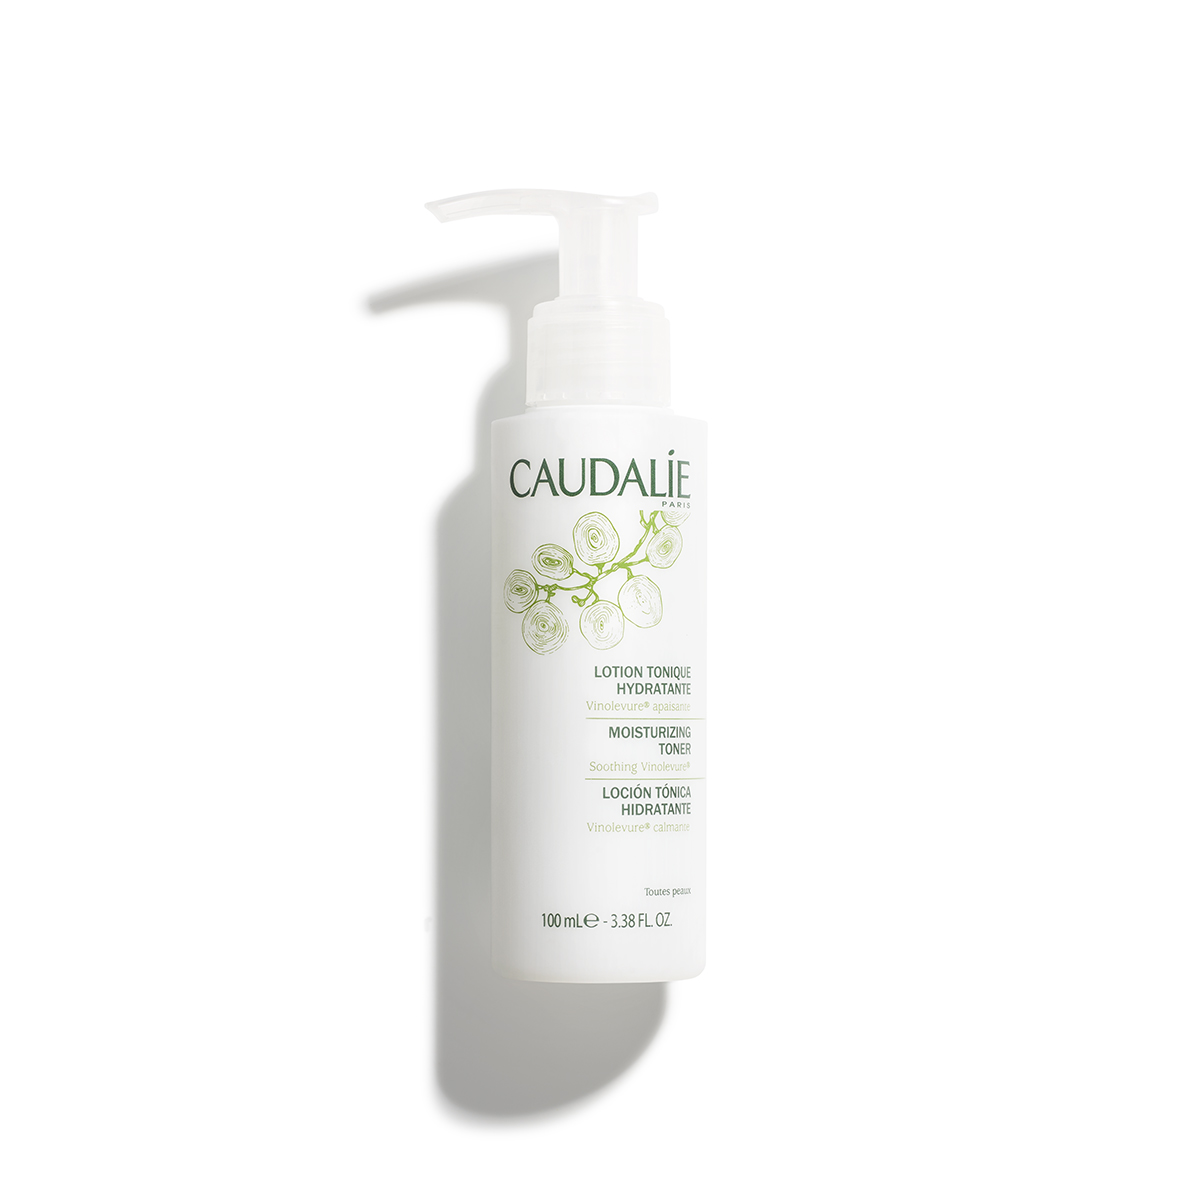 Moisturizing Toner - 100 ml